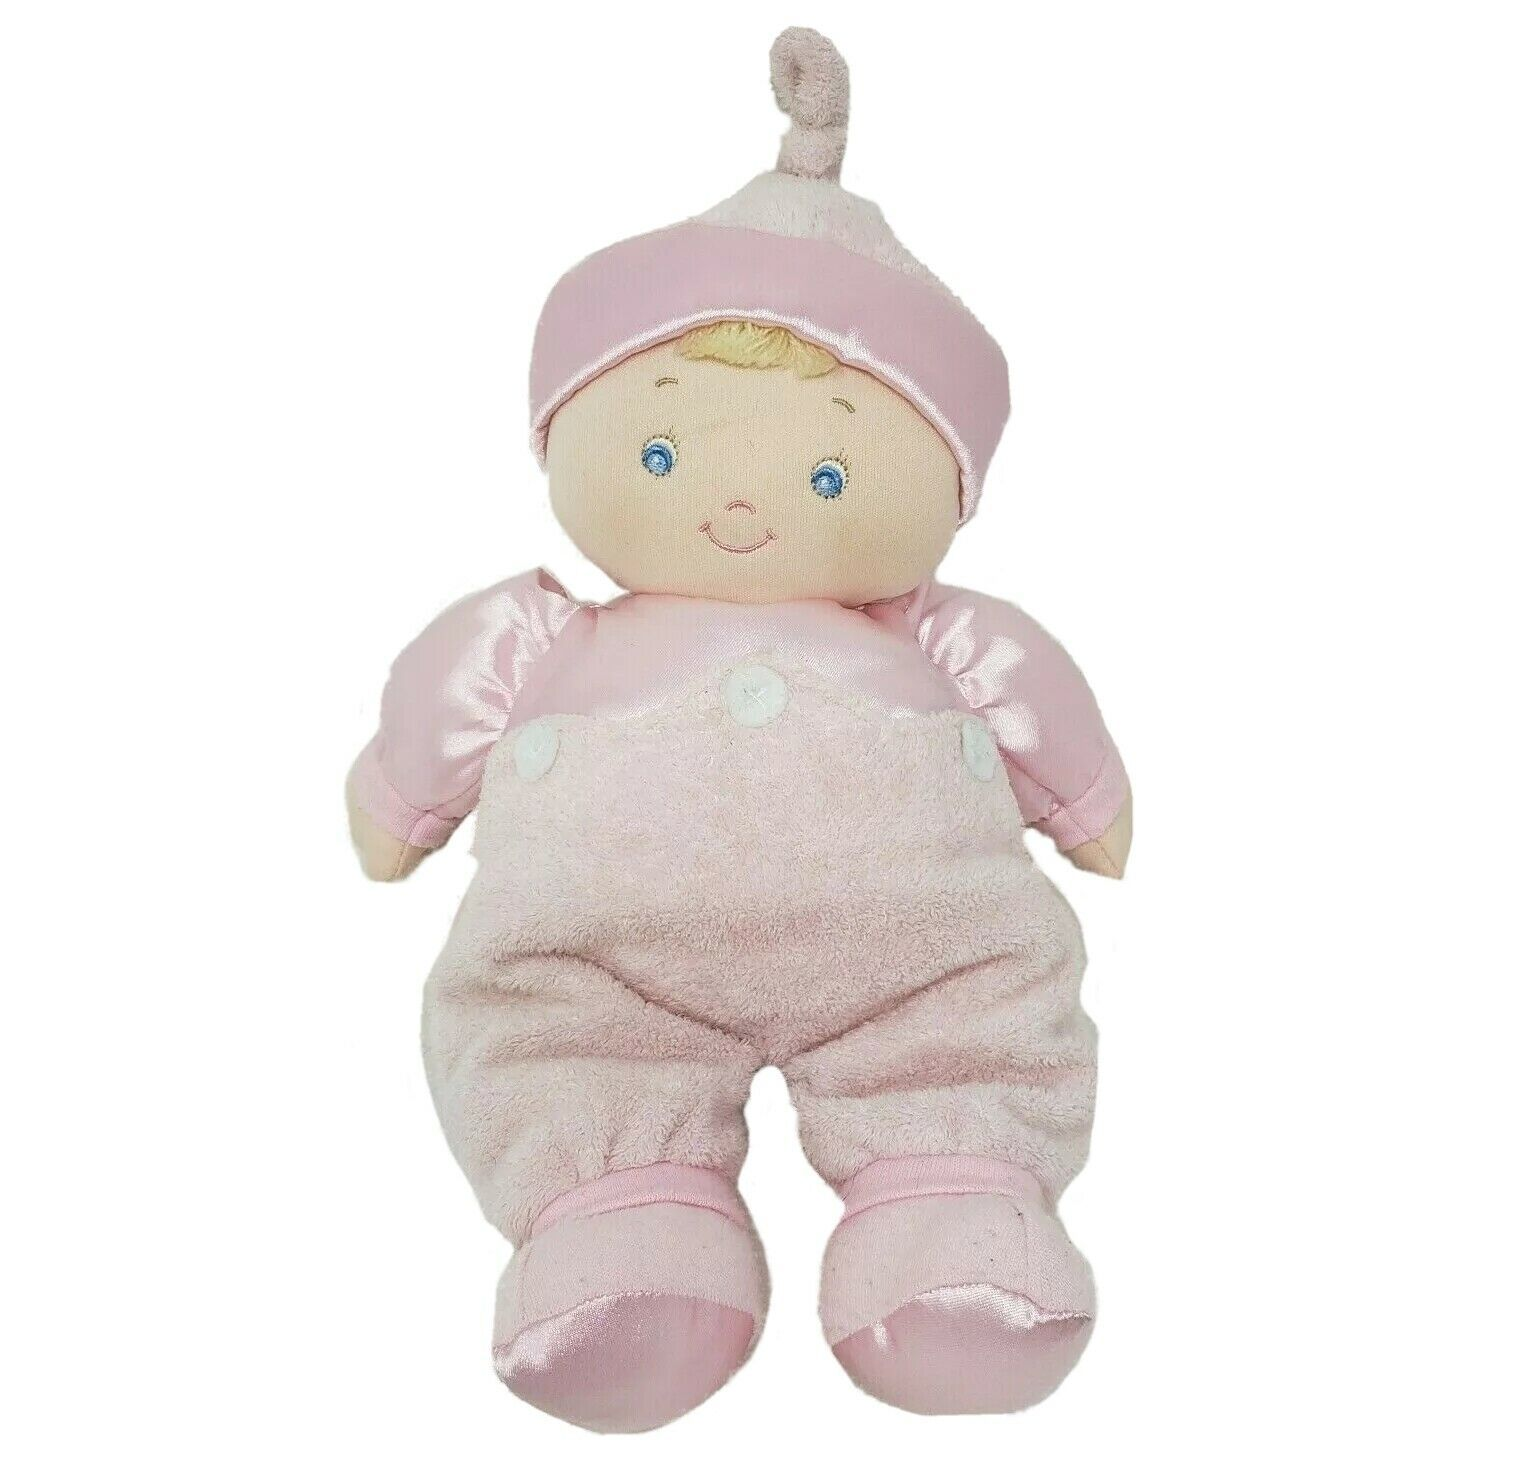 "Primary image for 12"" BABY GUND SATIN DOLLY 58061 STUFFED ANIMAL PLUSH TOY SOFT PINK PAJAMAS DOLL"